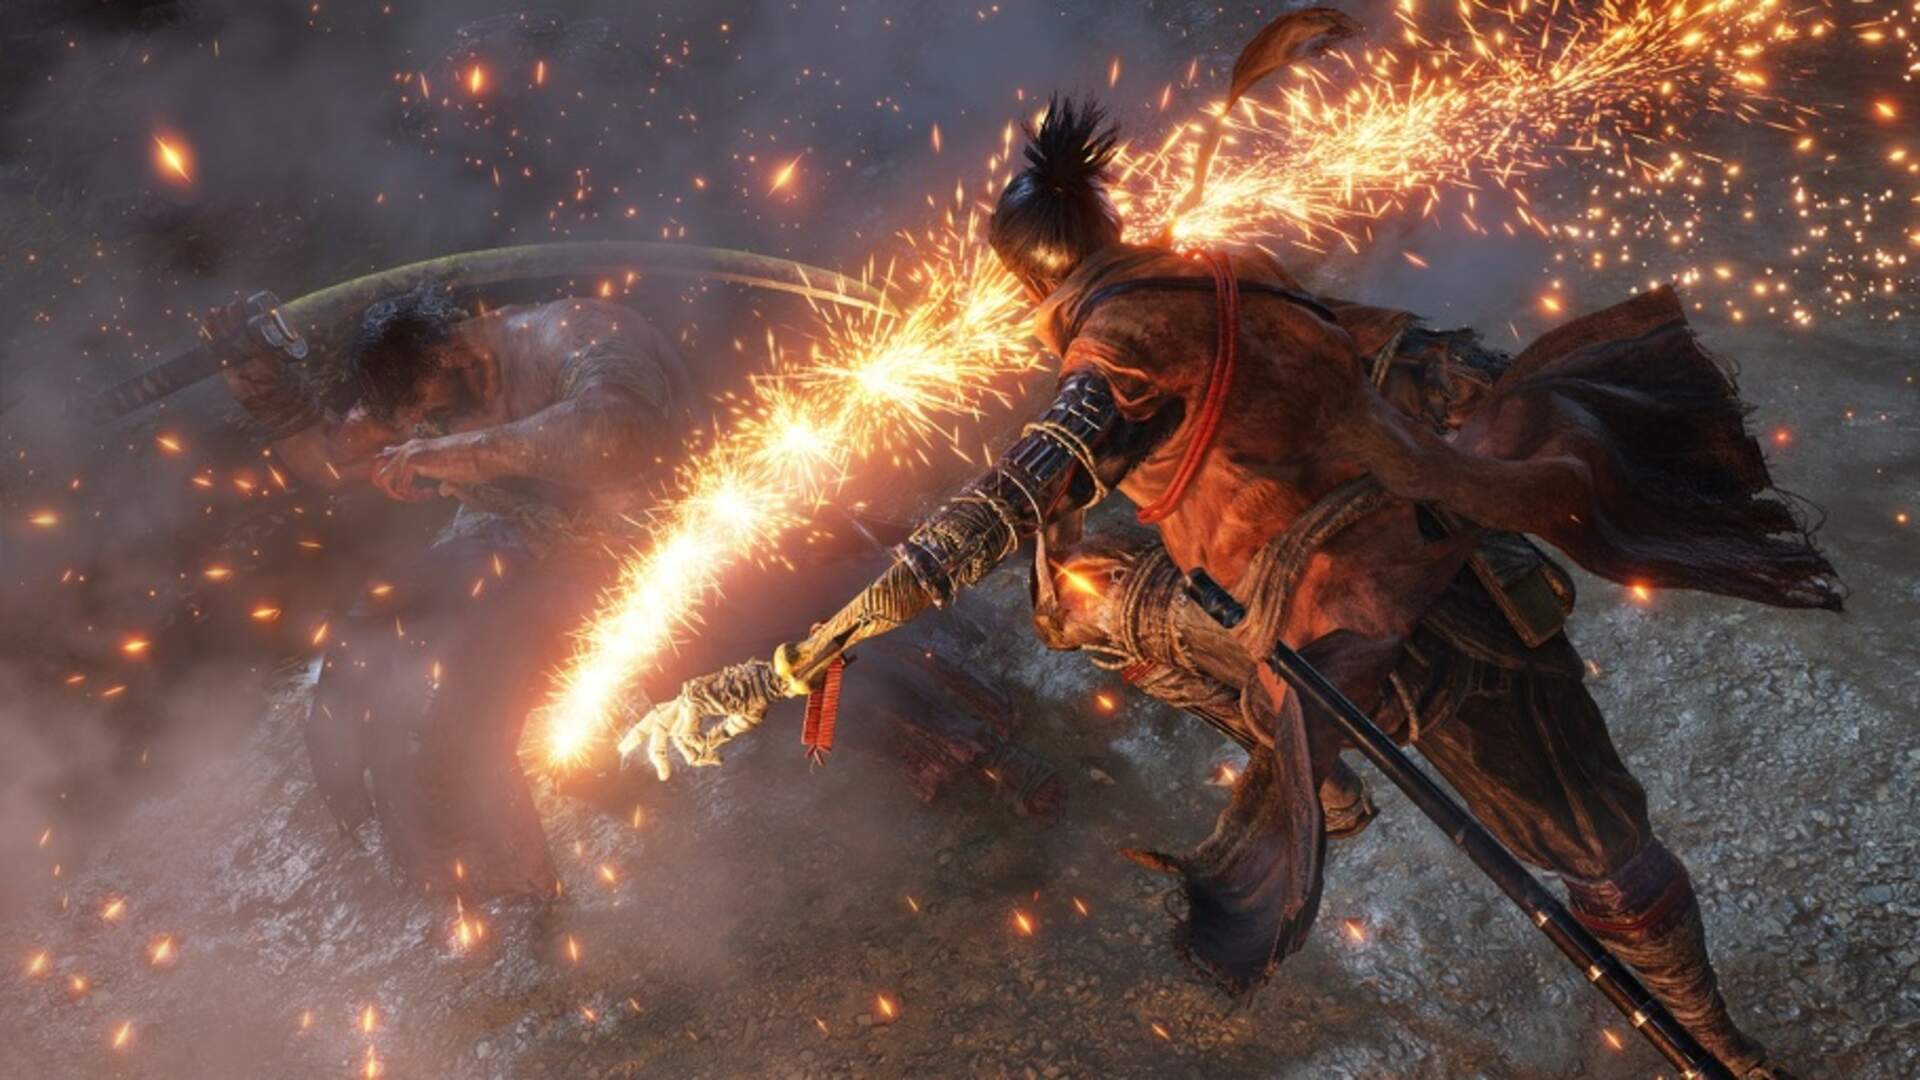 5 Games Like Sekiro If You're Looking For Something Similar